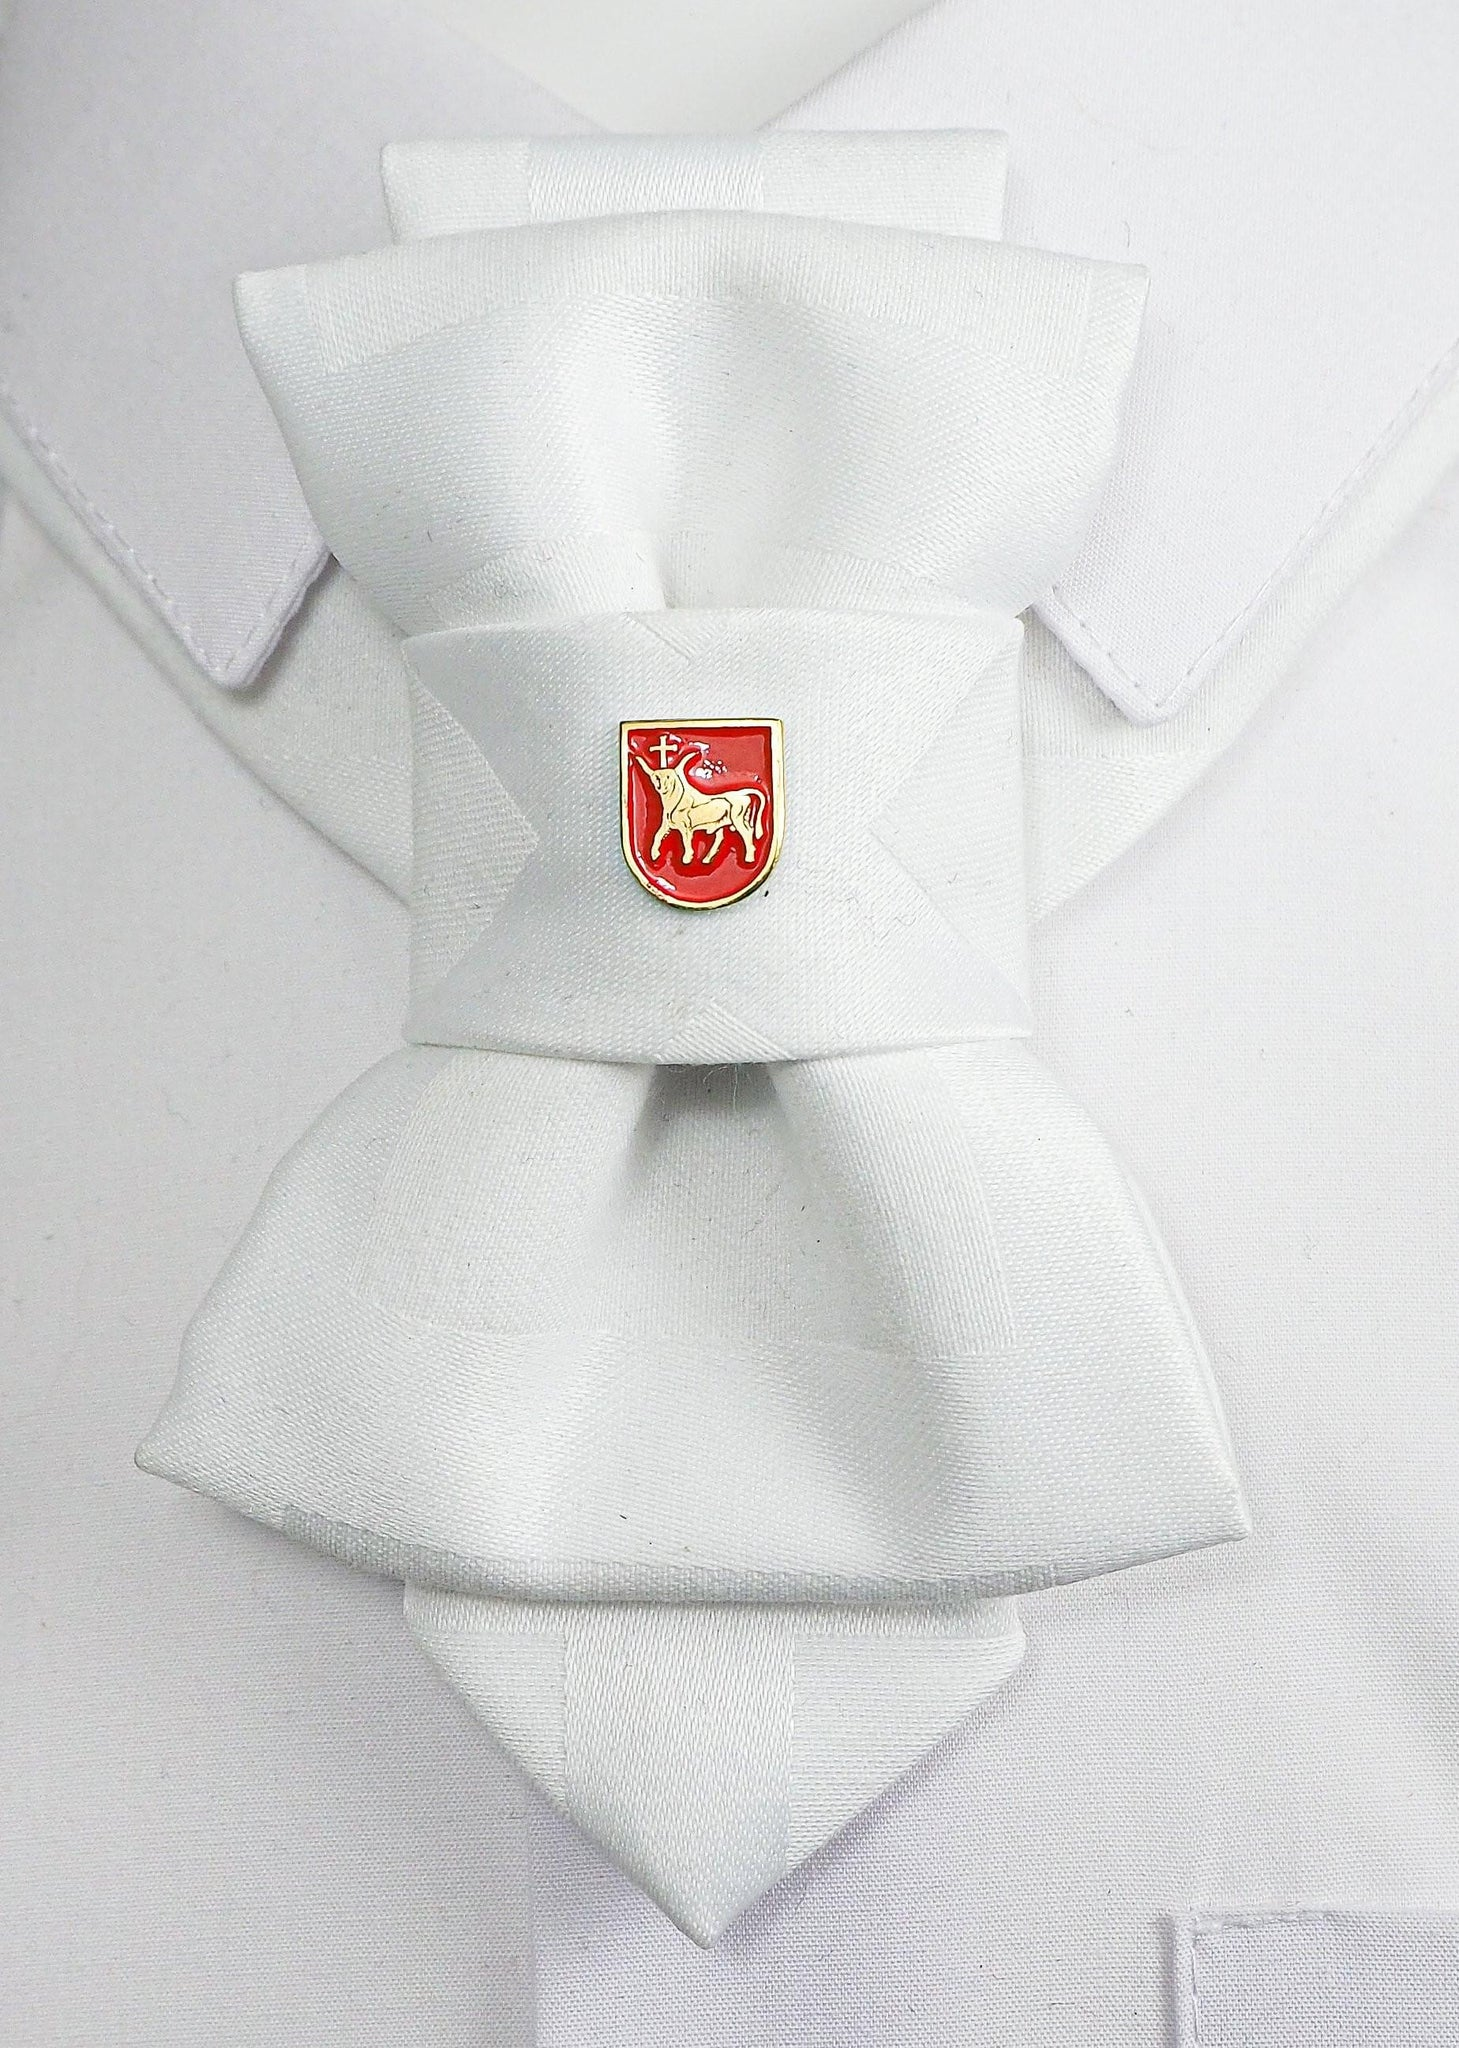 Bow Tie, Tie for wedding suite BADGE - COAT OF ARMS OF KAUNAS hopper tie DECOR ELEMENT